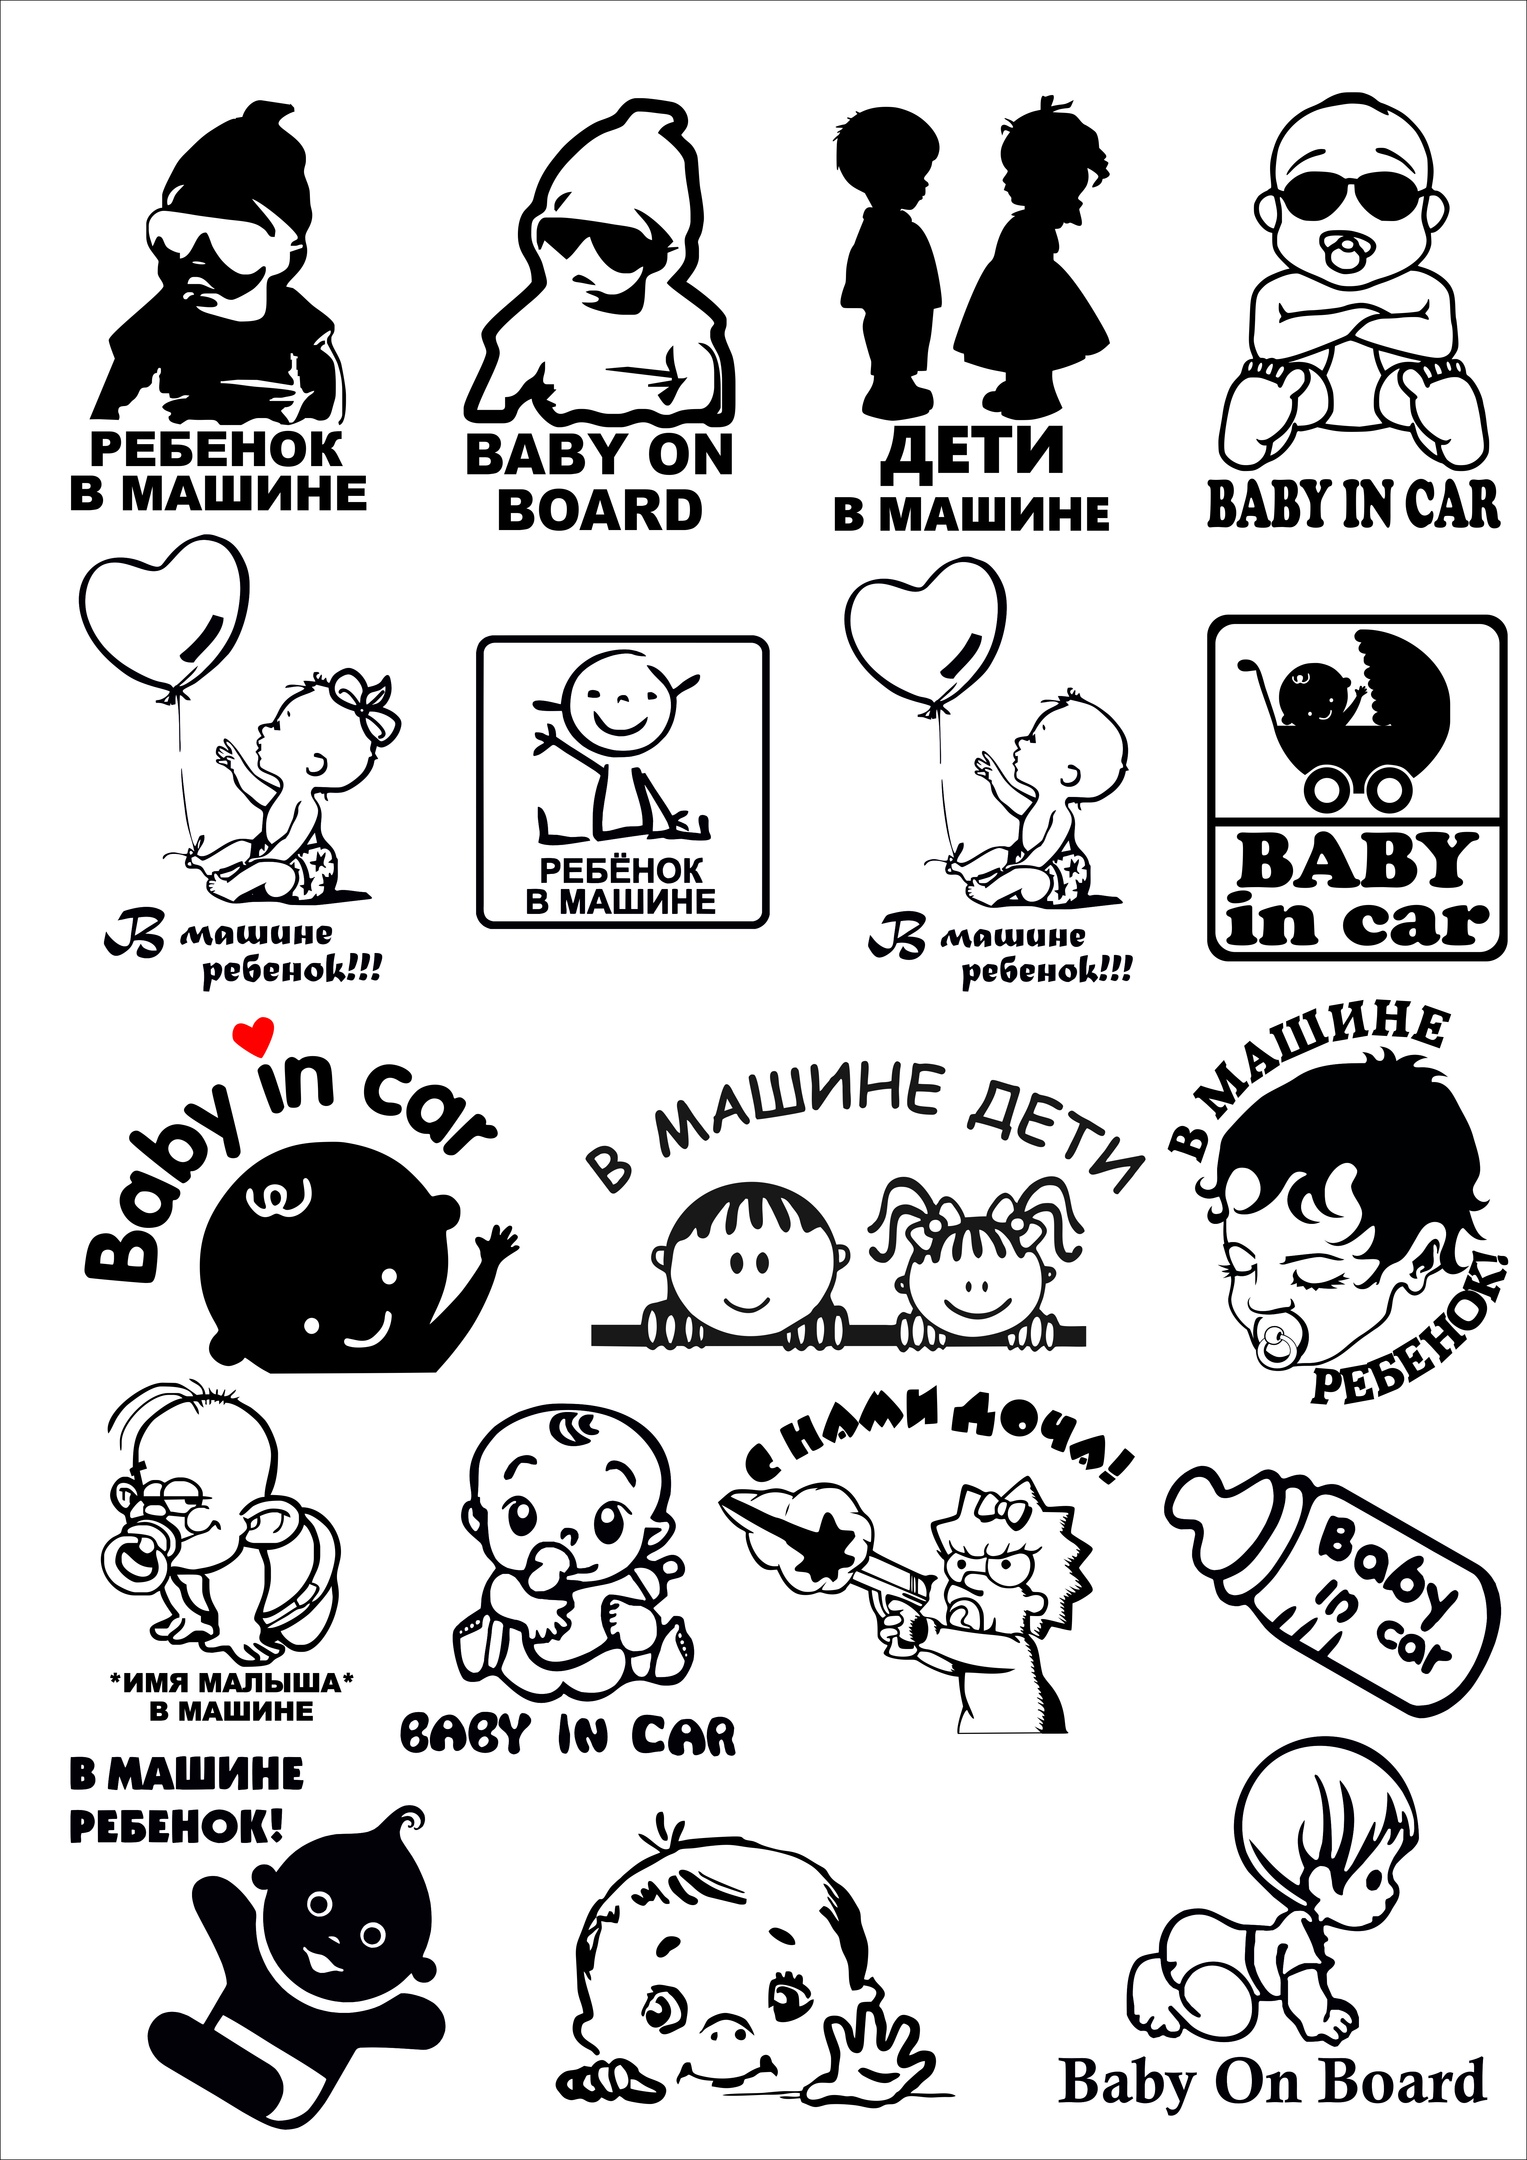 Baby In Car Sticlers Free Vector